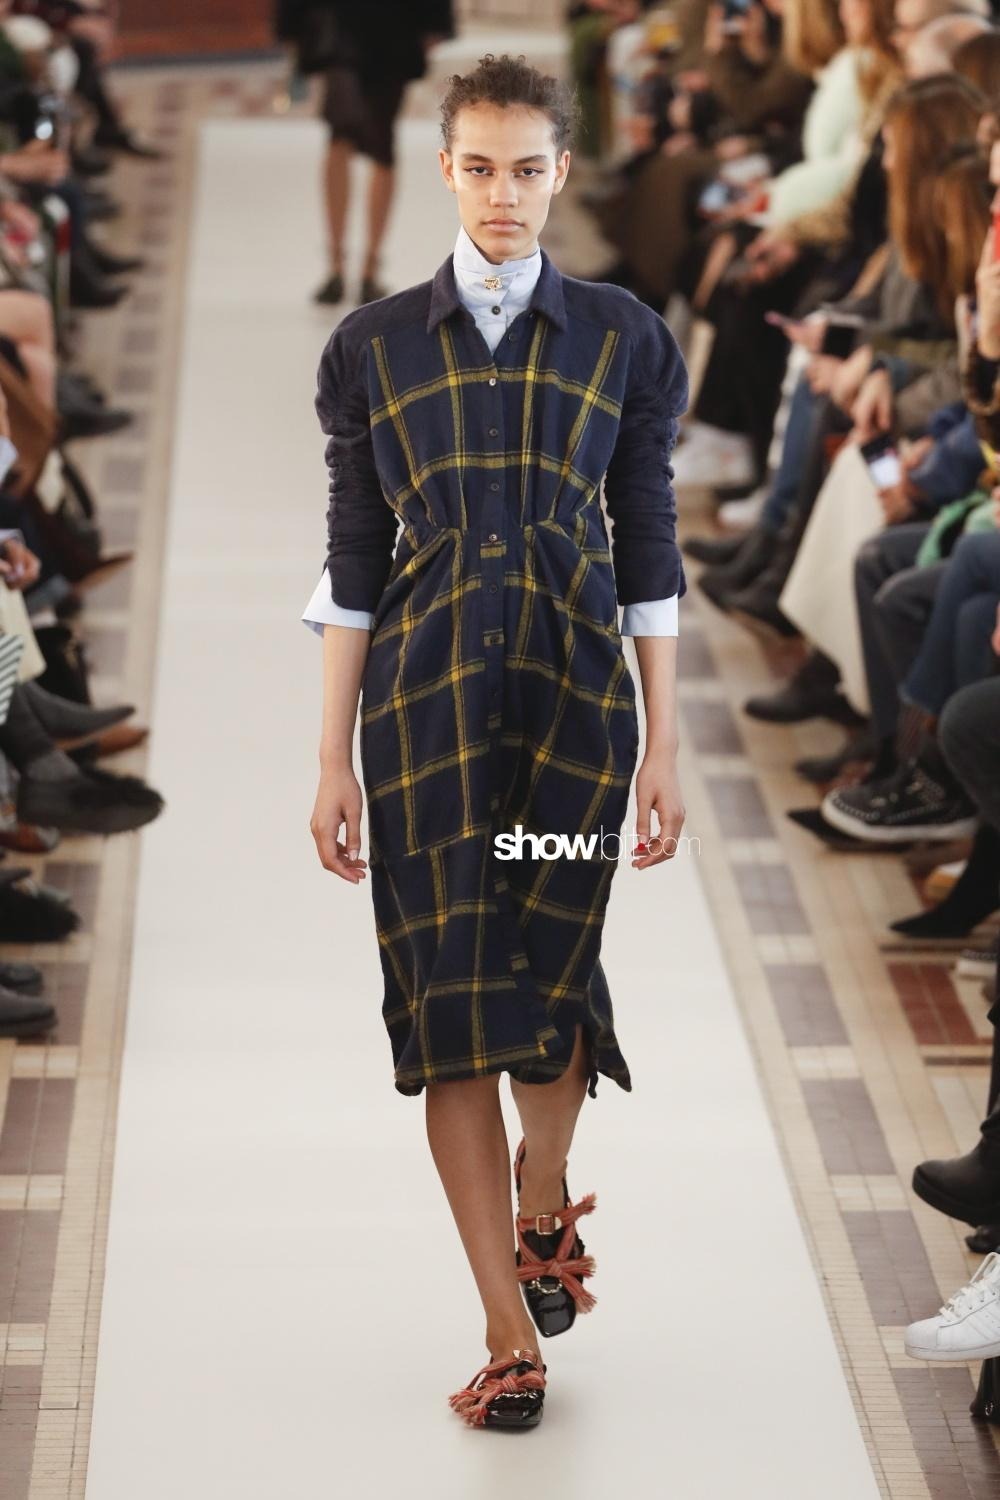 Carven Fall Winter 2018 Paris